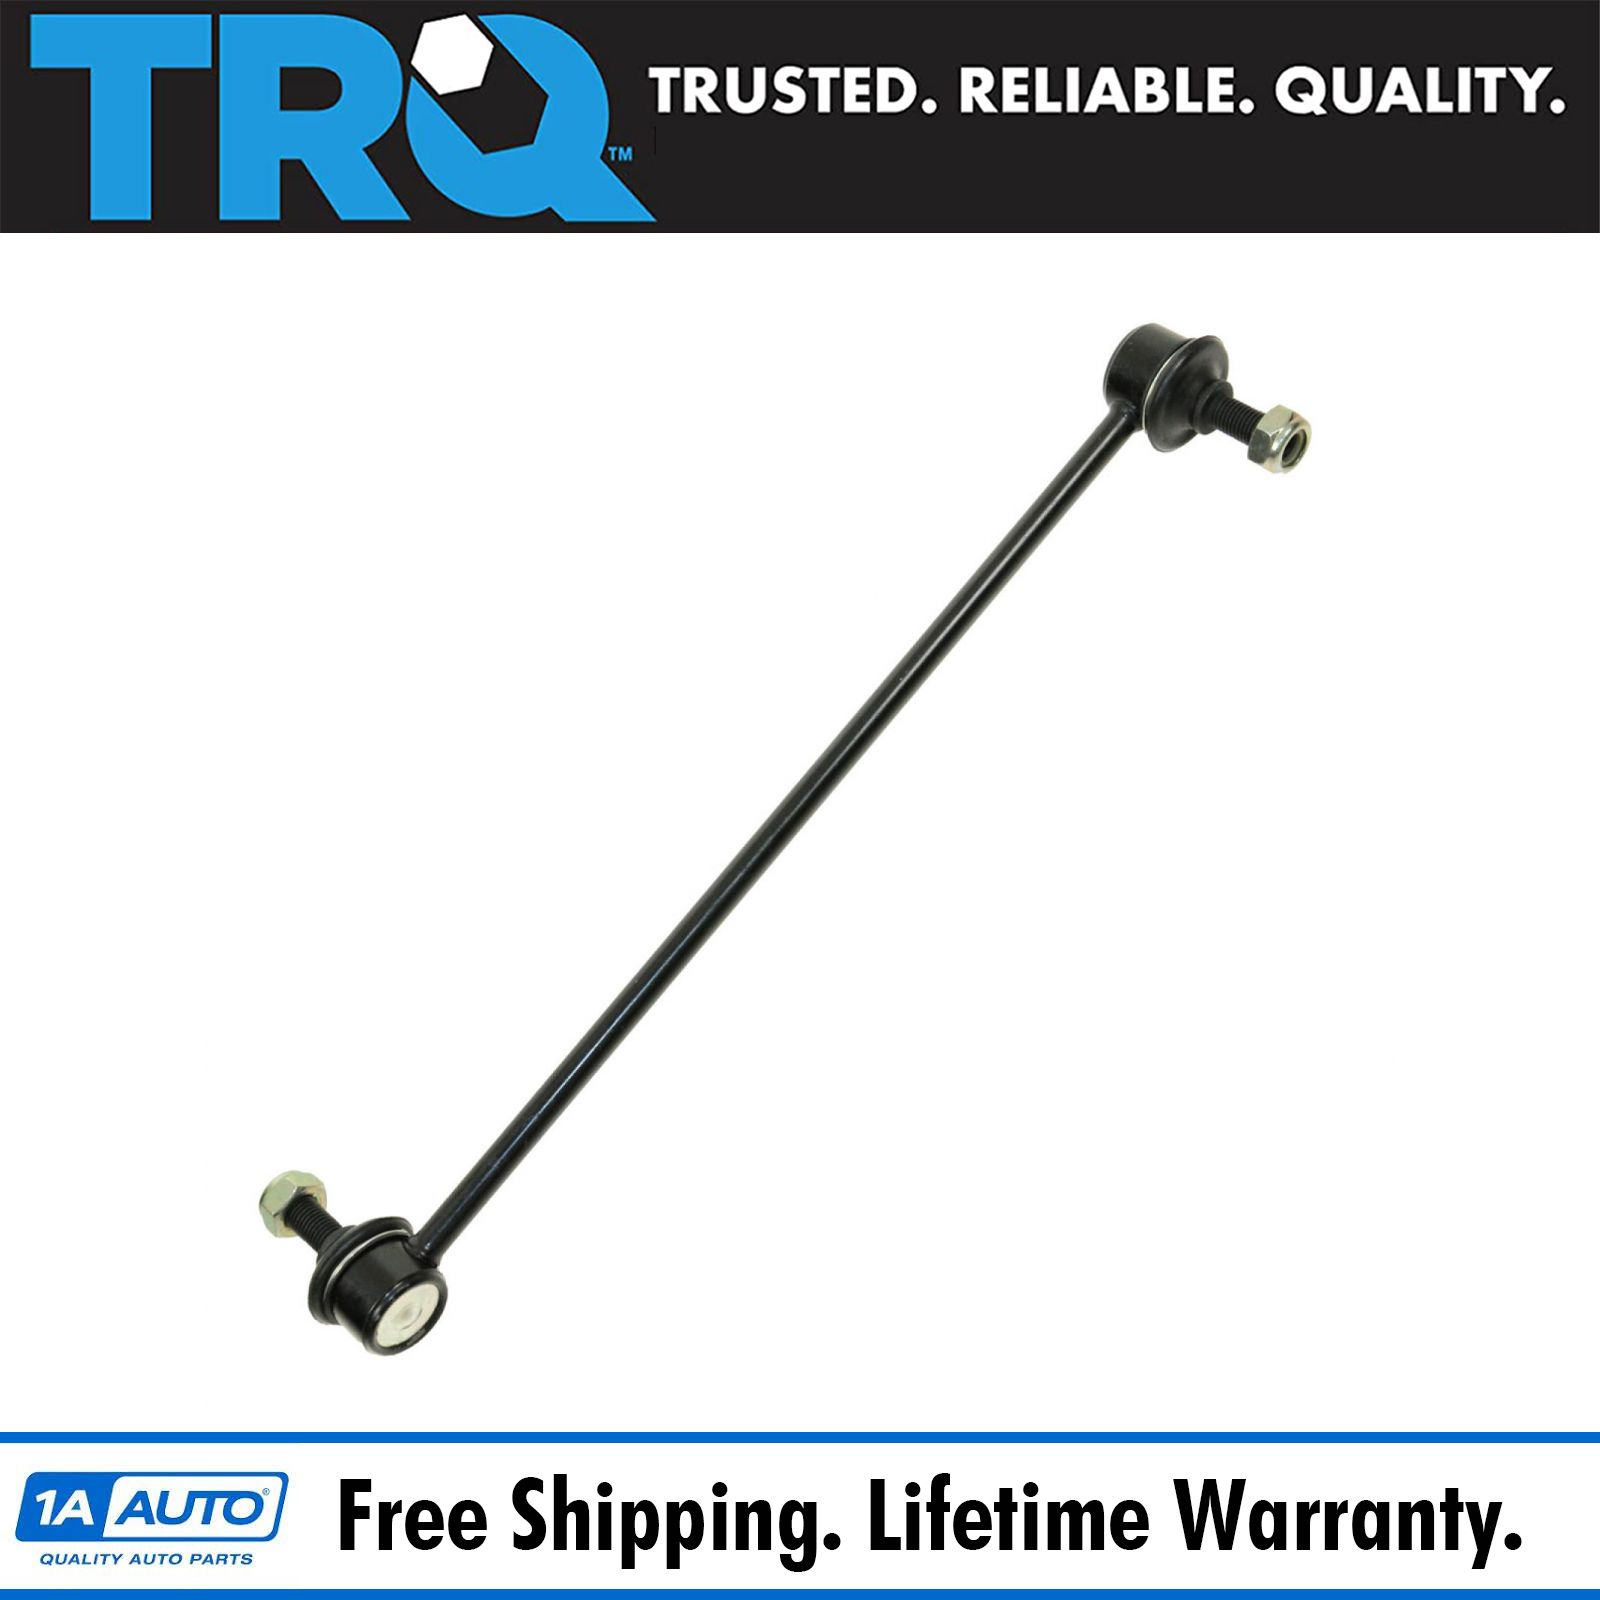 2 Front Stabilizer Sway Bar End Link Kit Fits Mazda MPV 2001-2006